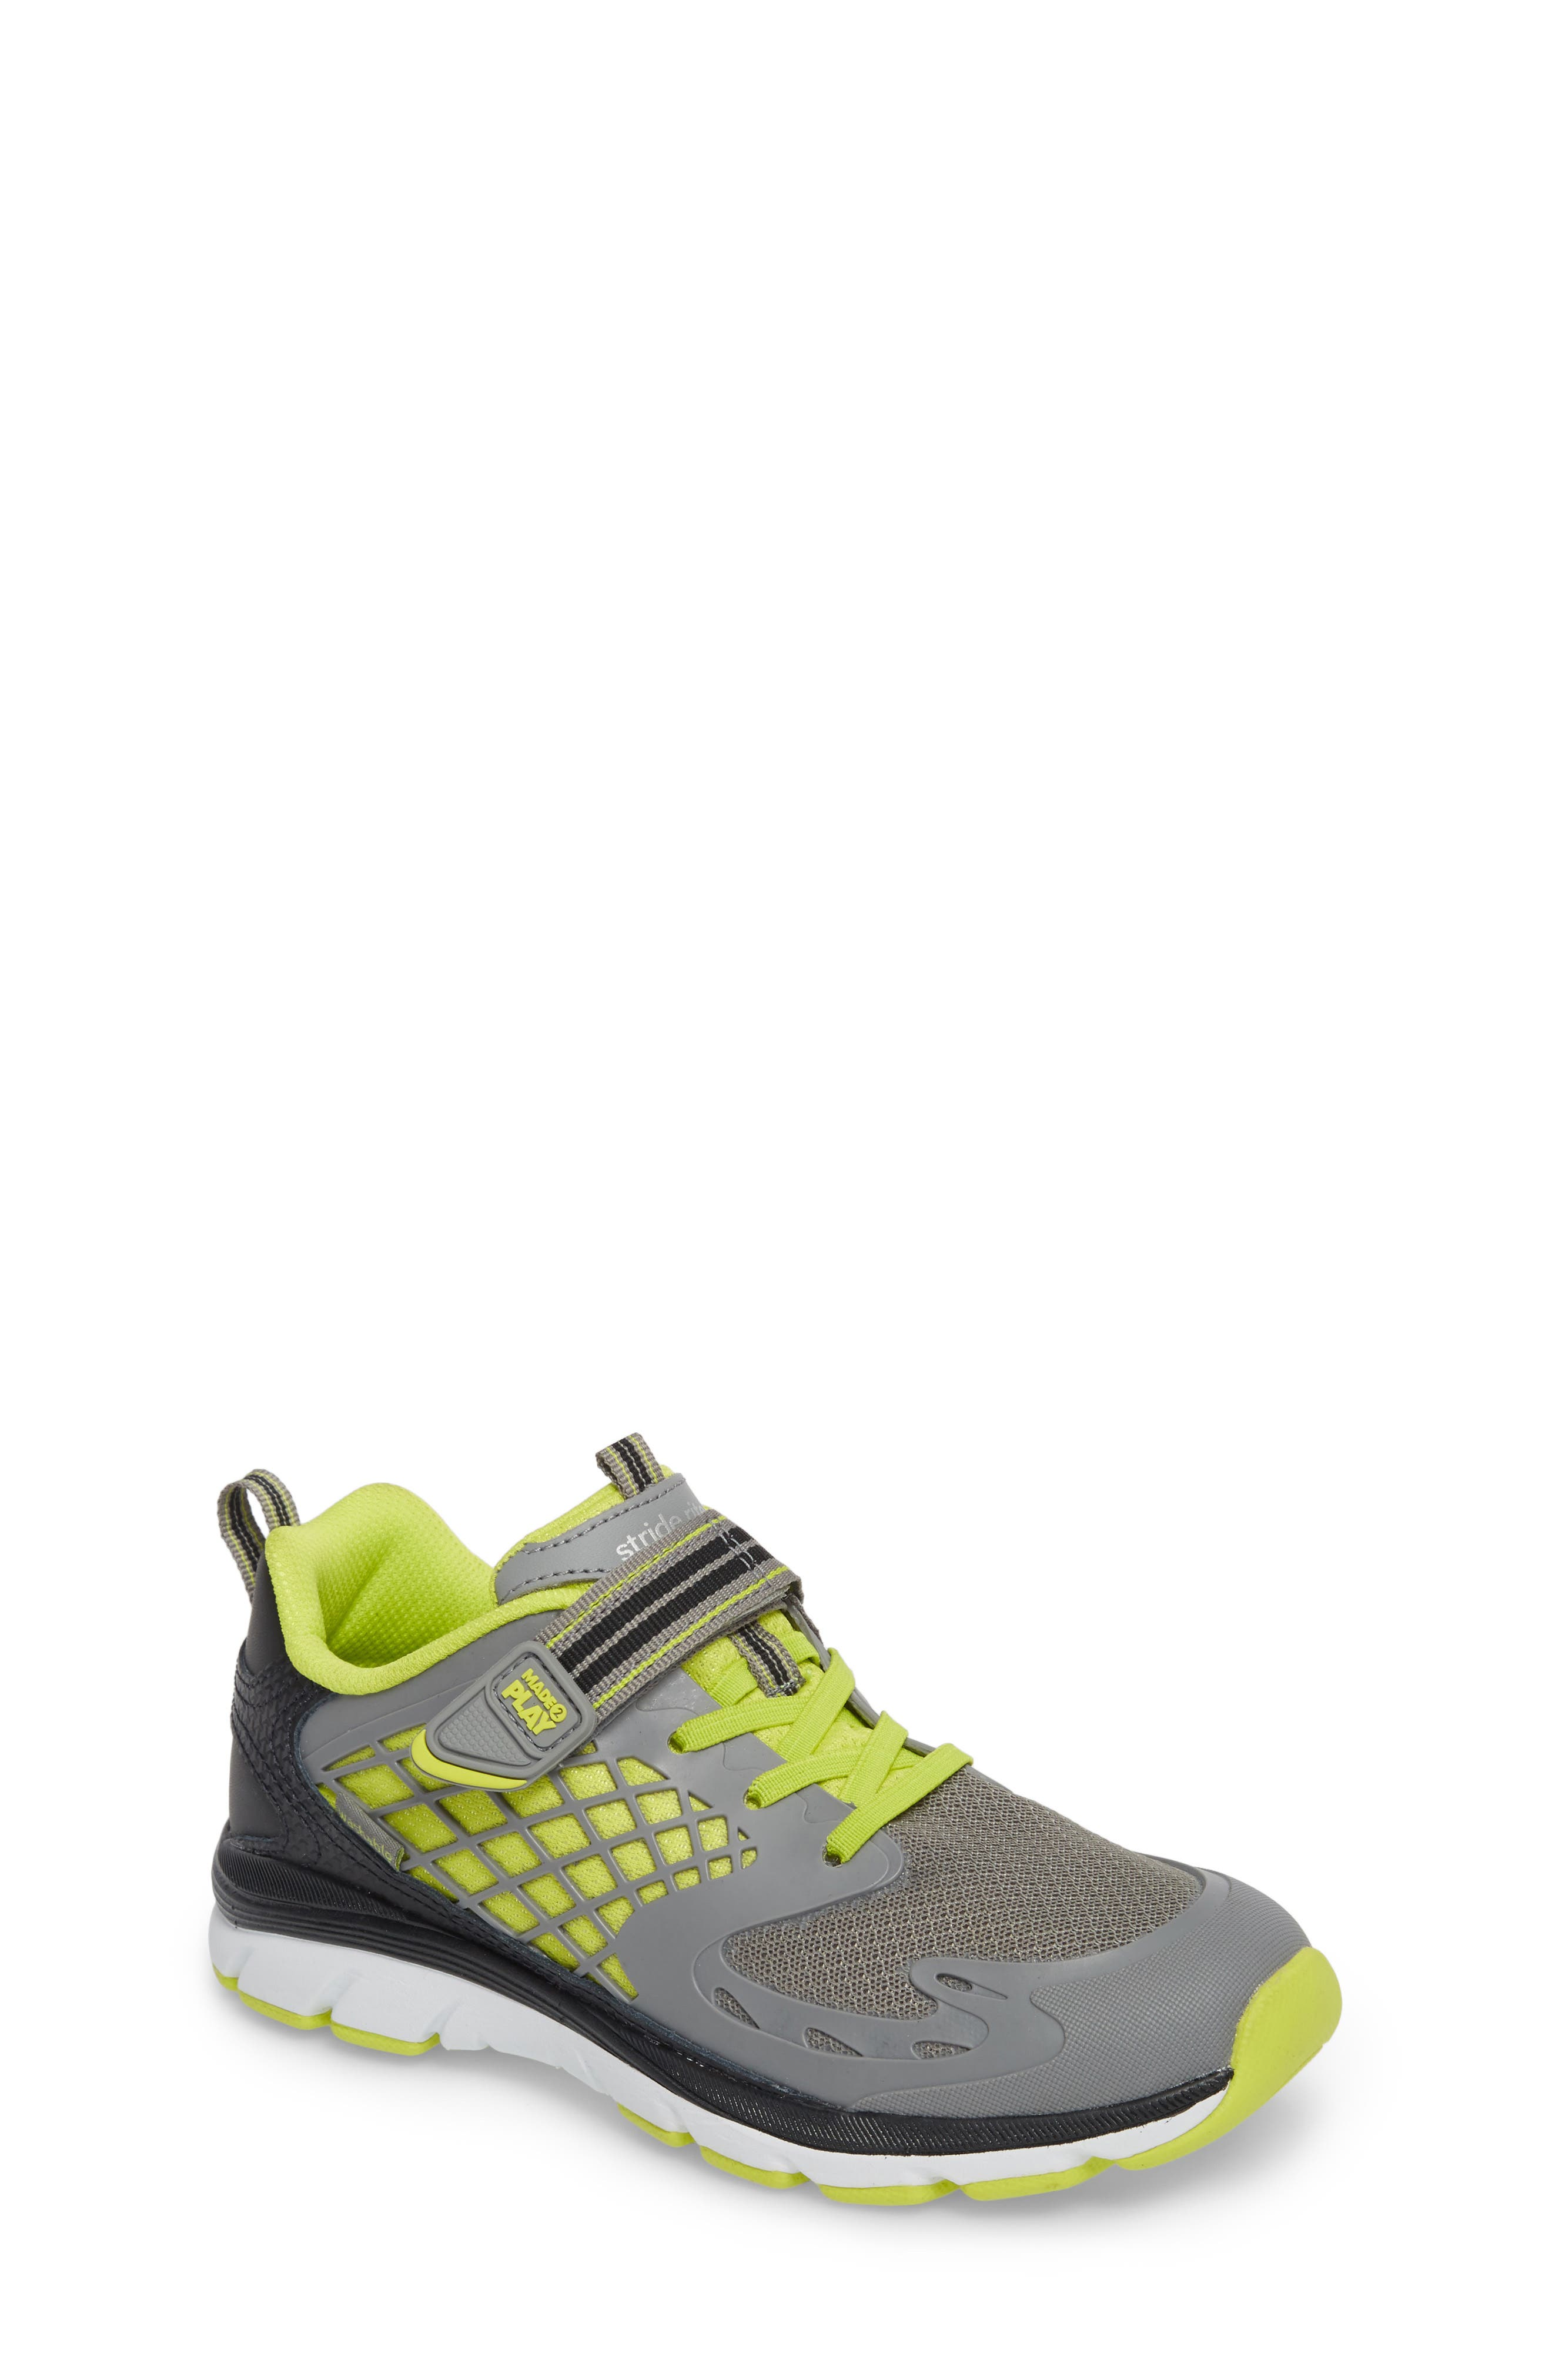 Made 2 Play Breccen Sneaker,                         Main,                         color, Grey/ Lime Leather/ Textile